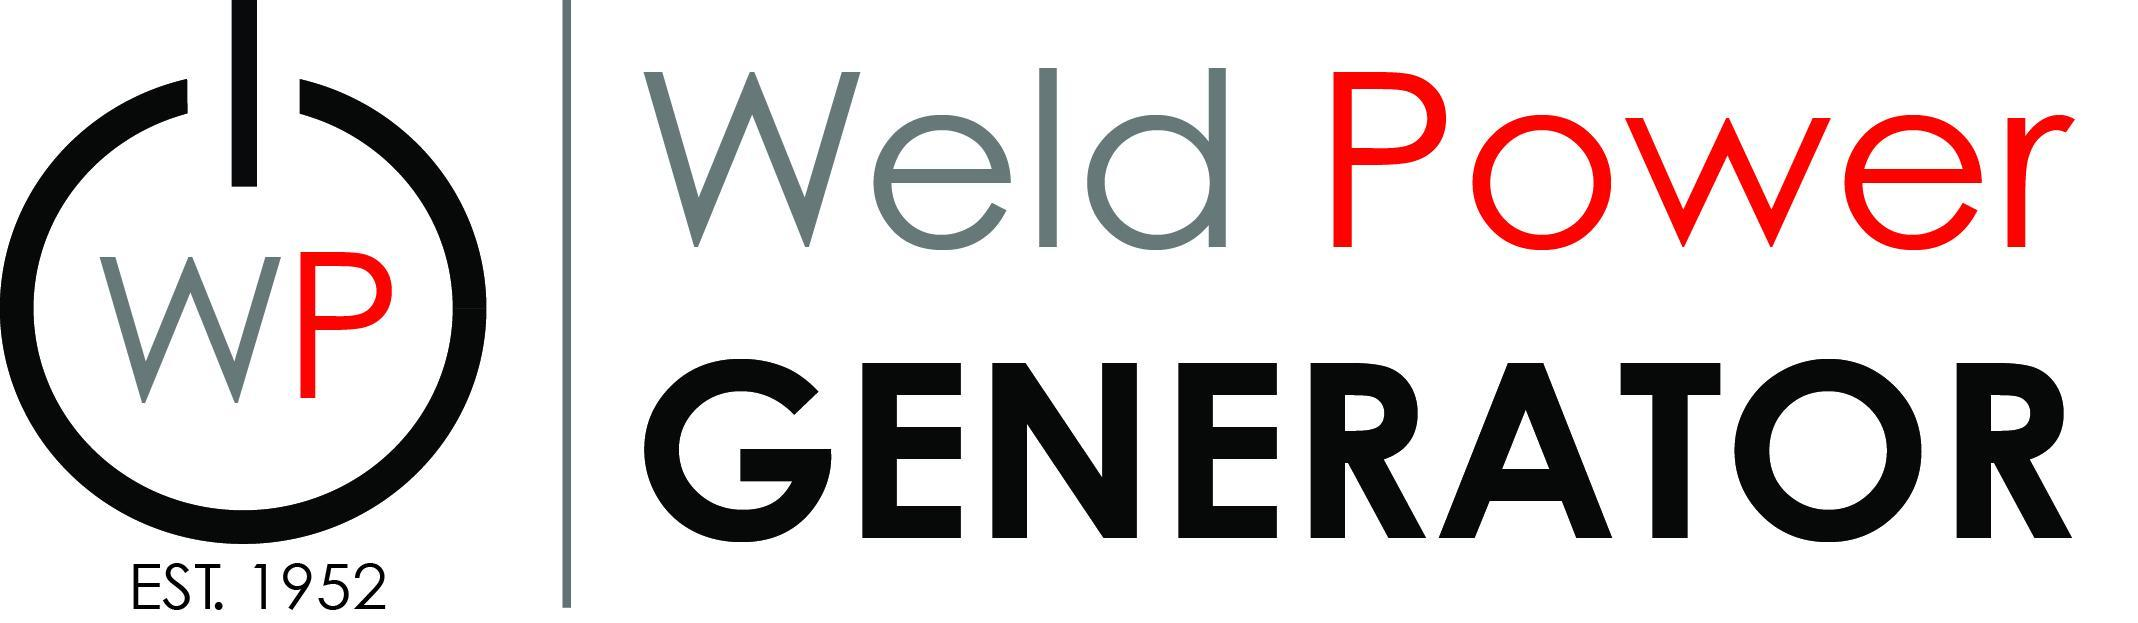 Weld Power Generator Logo